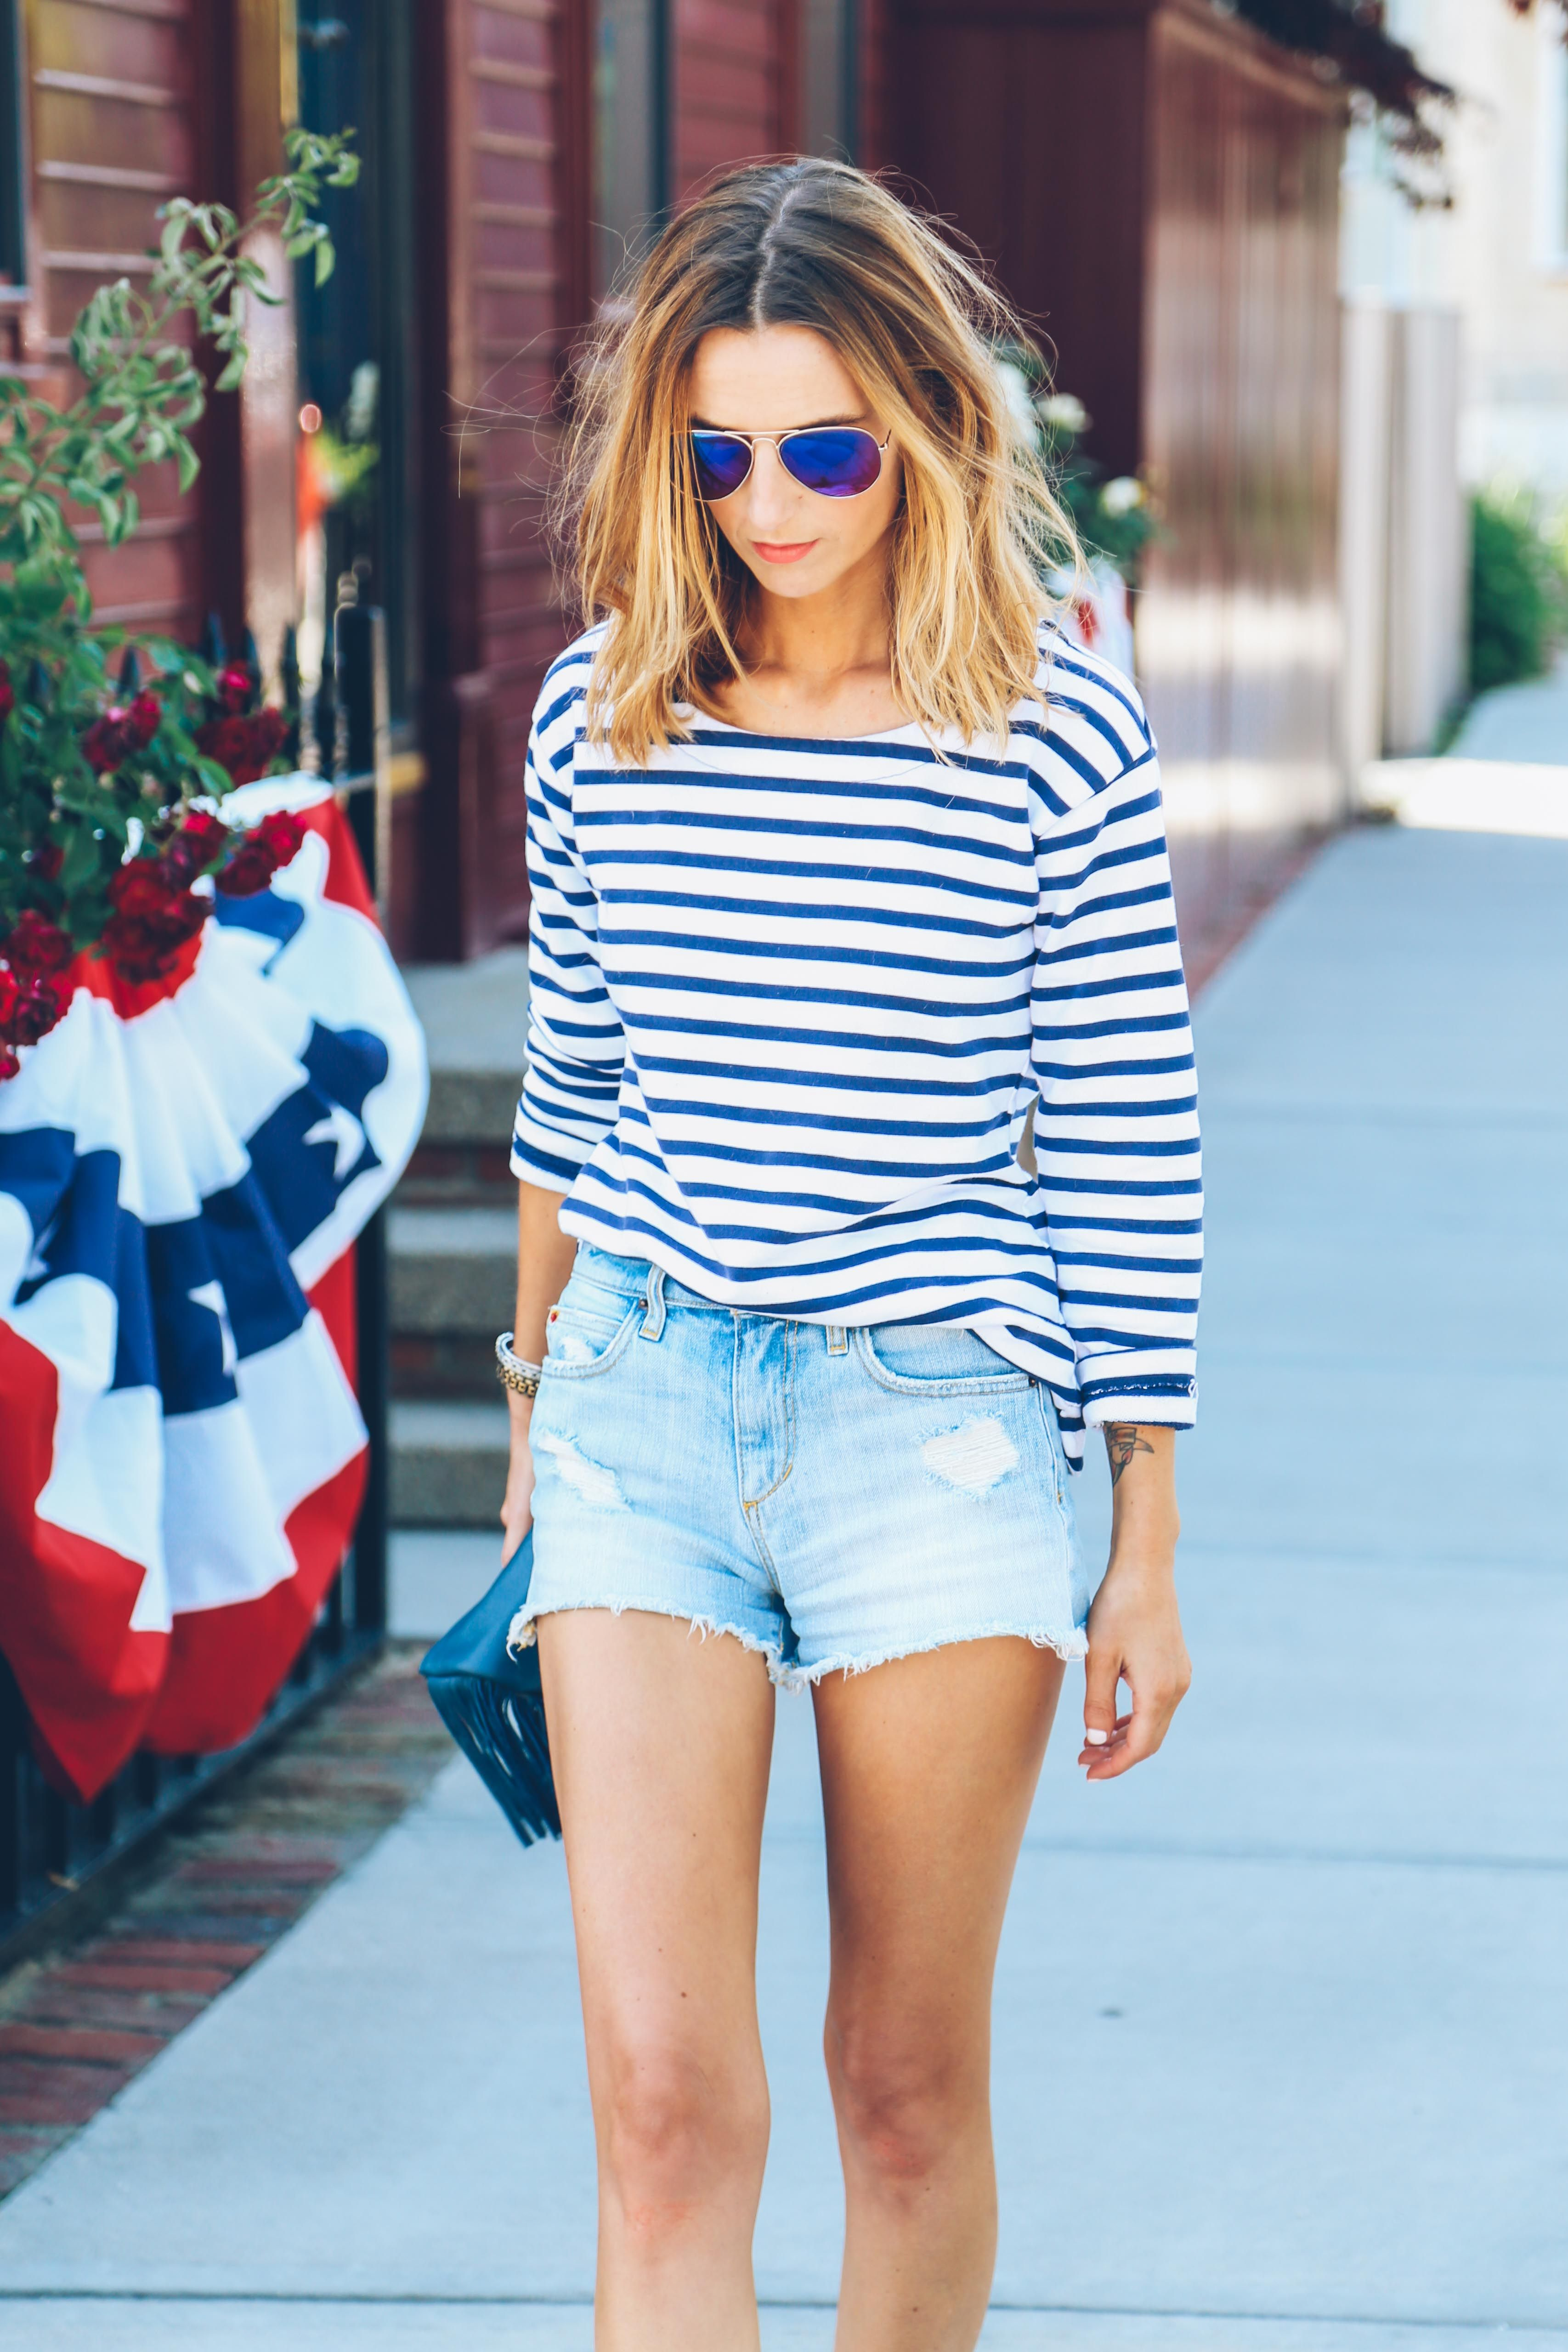 4th Of July Outfit Ideas Striped Shirt And Cut Offs Jessannkirby